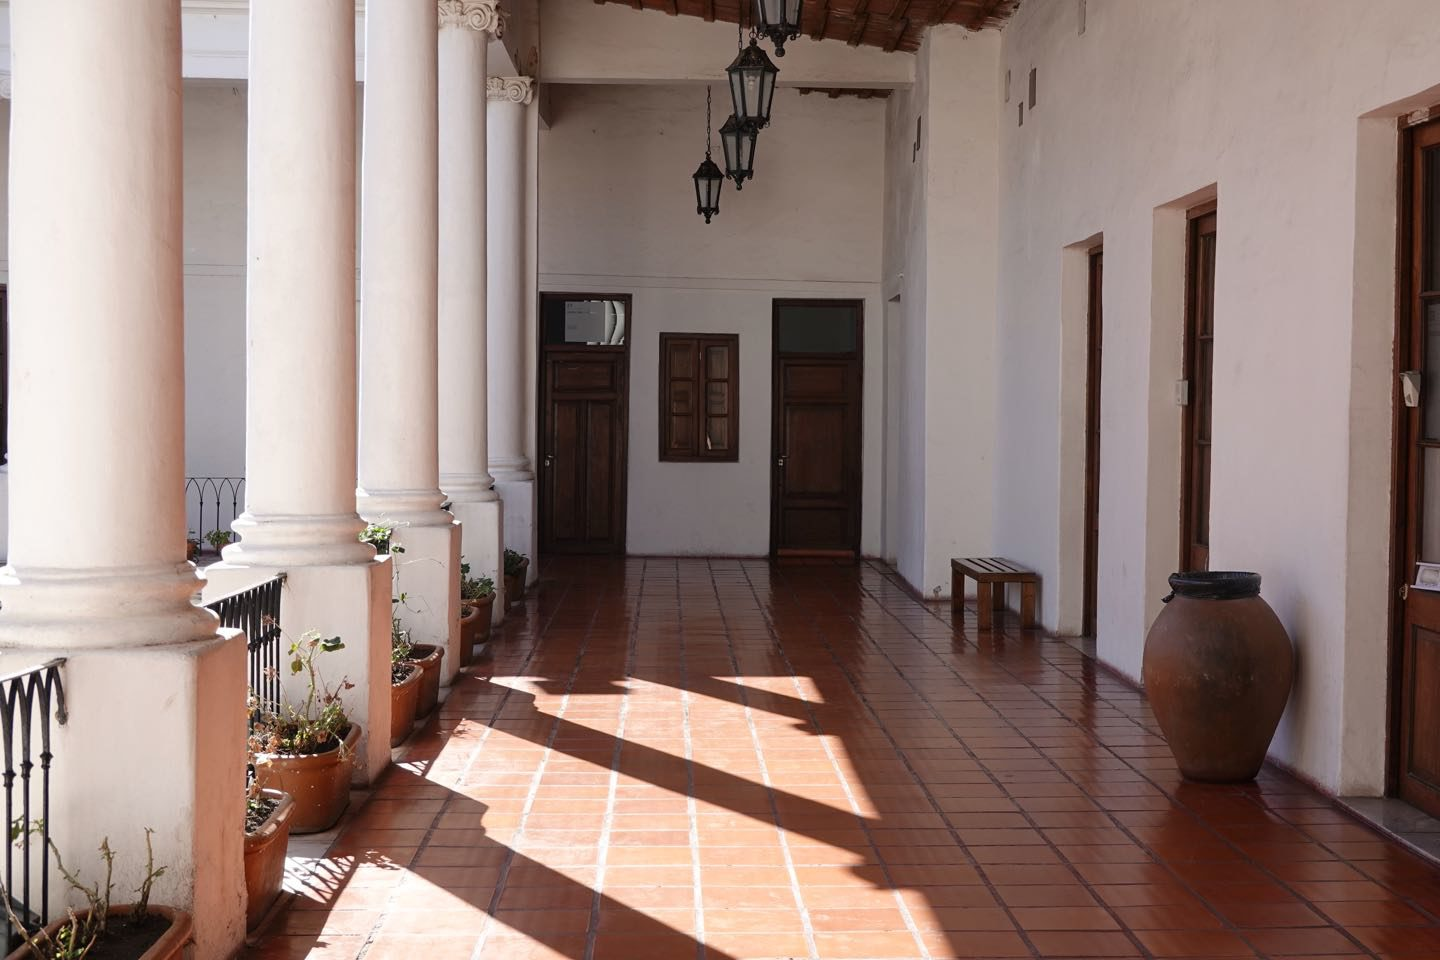 gallery inside the Cabildo on the first floor